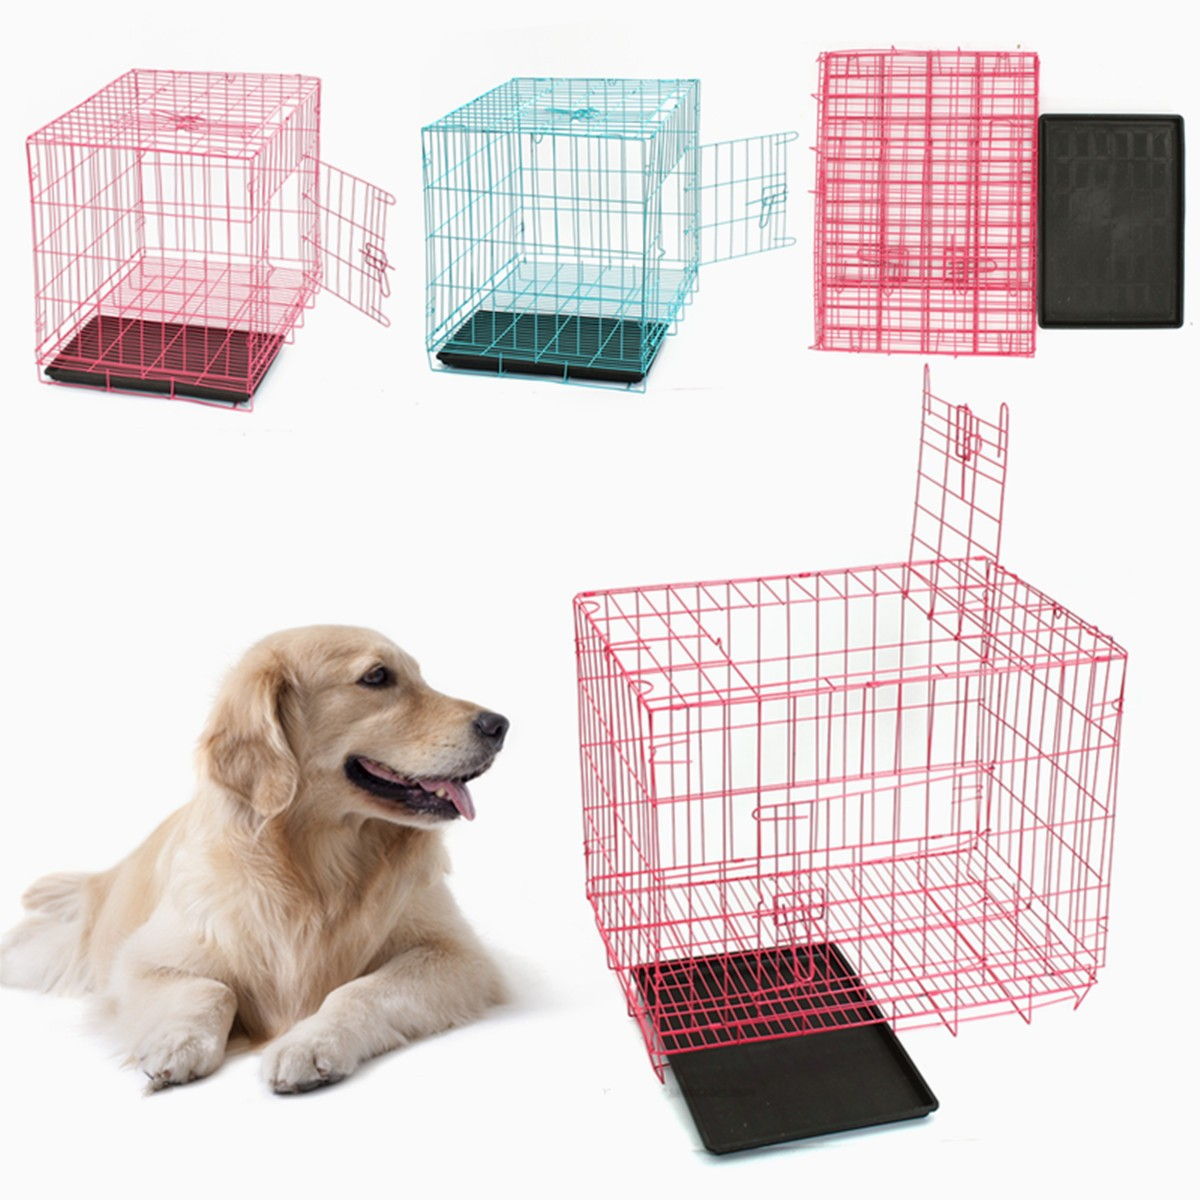 28 5 Pet Crate Dog House Nest Baskets Folding Cat Cage Steel Puppy Kennel Playpen With Tray For